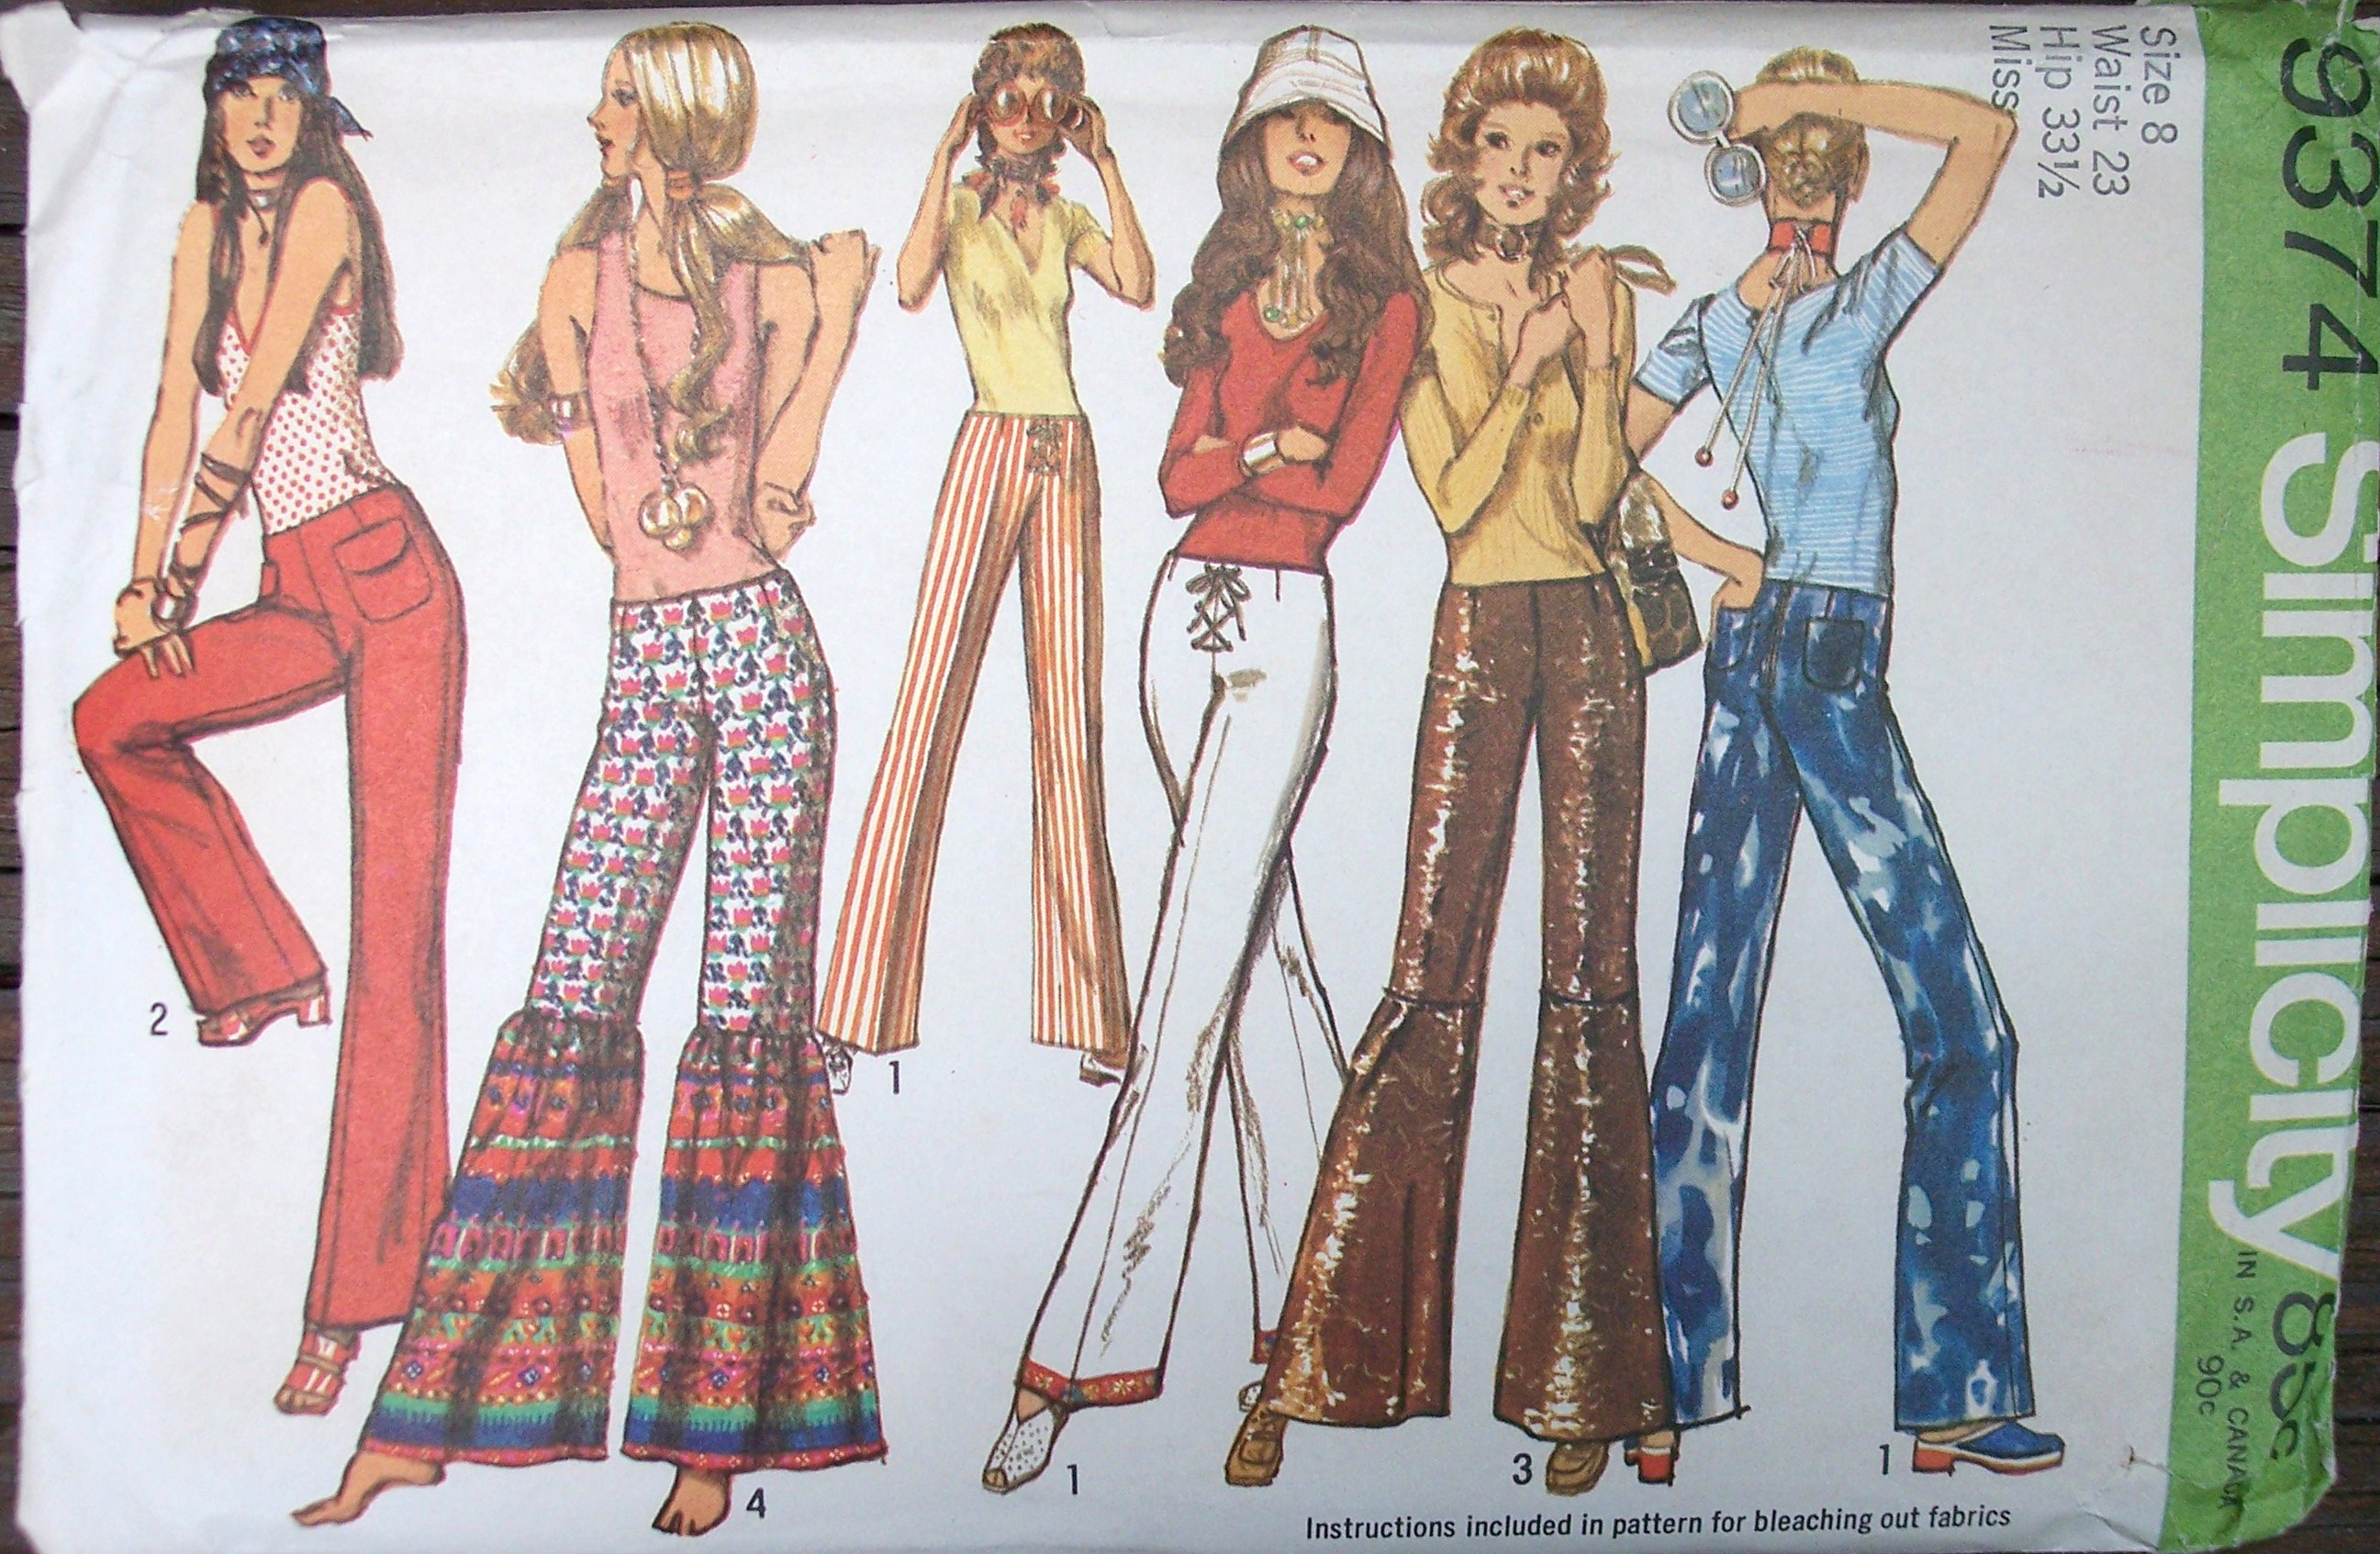 dating for hippies reviews News & reviews first date looks: 10 clothes and accessories for a hippie inspired style i listened to a lot of janis joplin and watched a lot of documentaries, but my style never quite morphed into a hippie style.